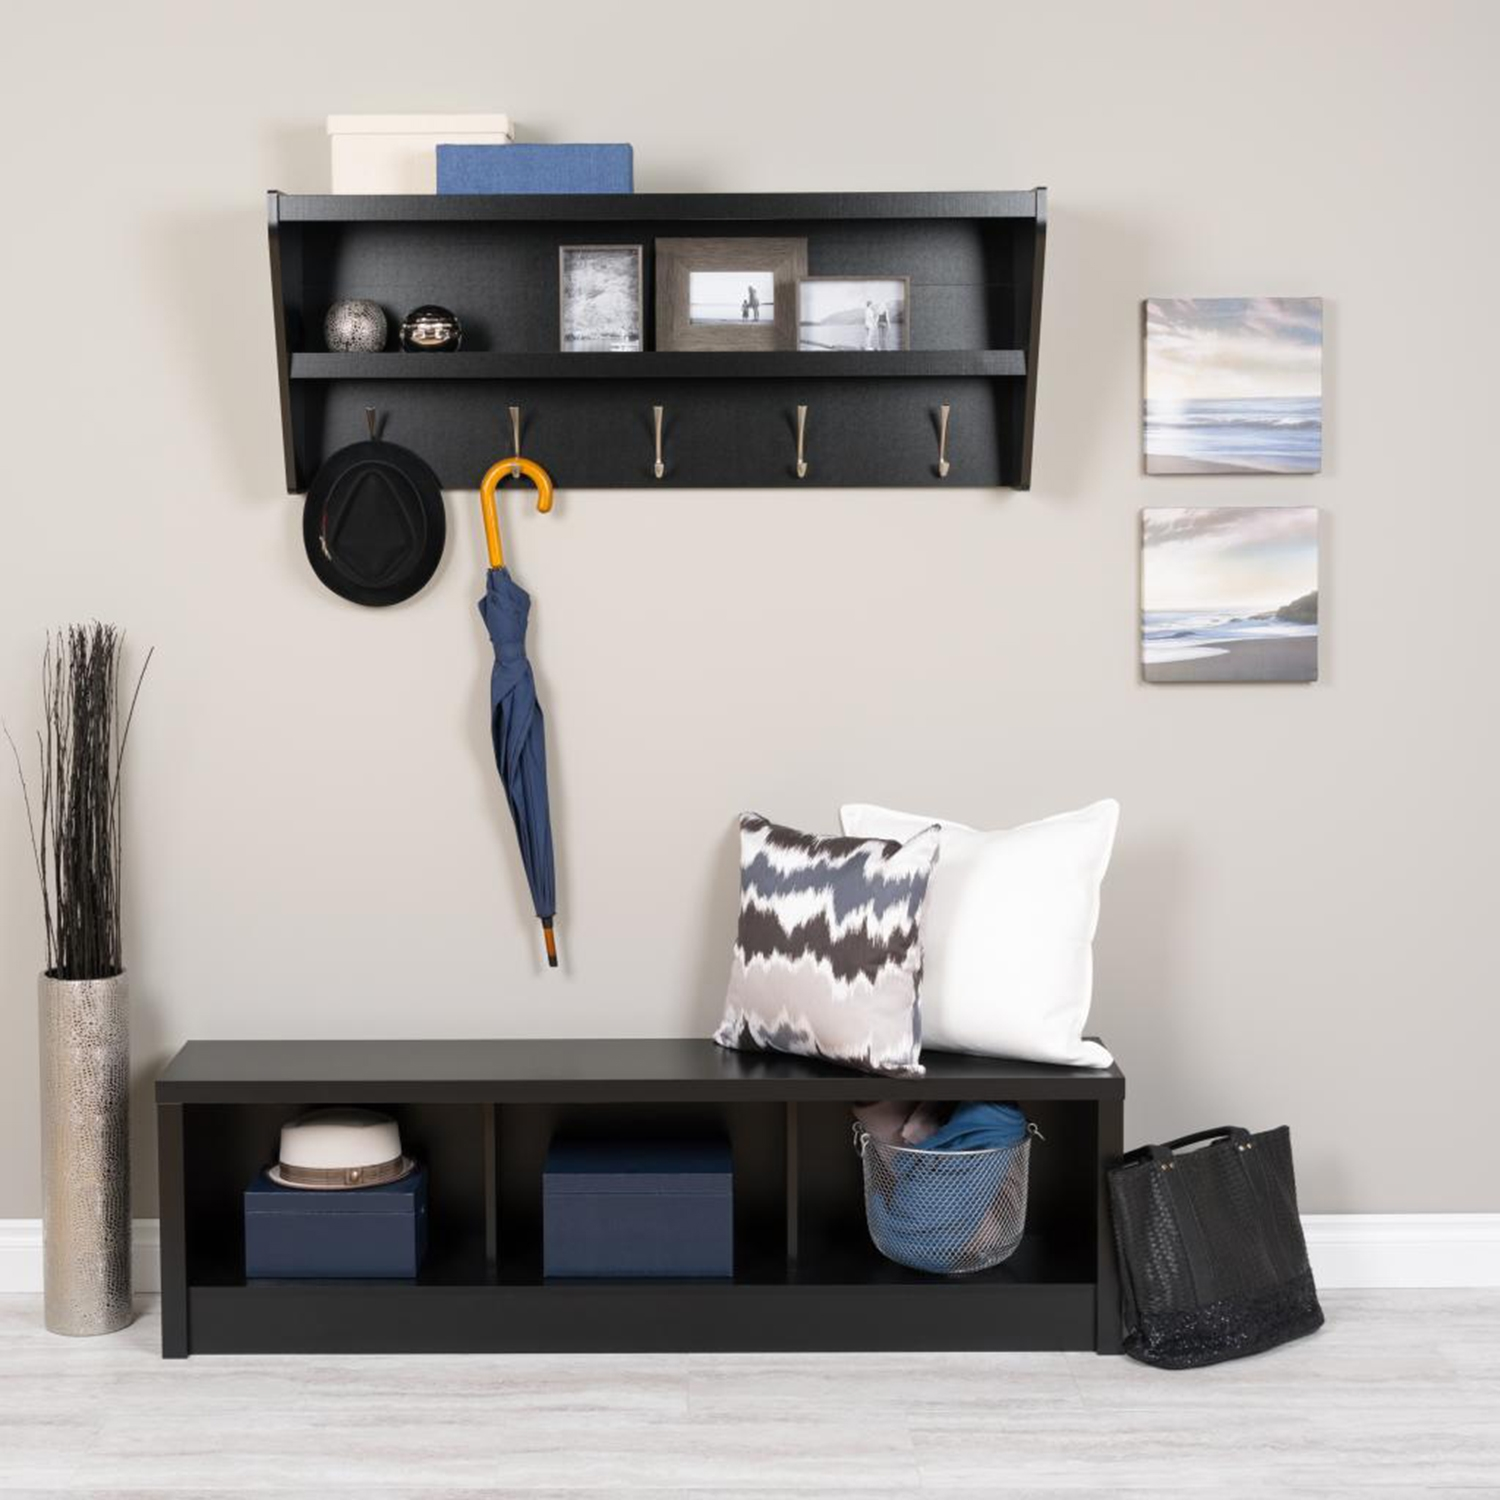 Floating Entryway Shelf and Coat Rack - Black - PRE-BUCW-0500-1